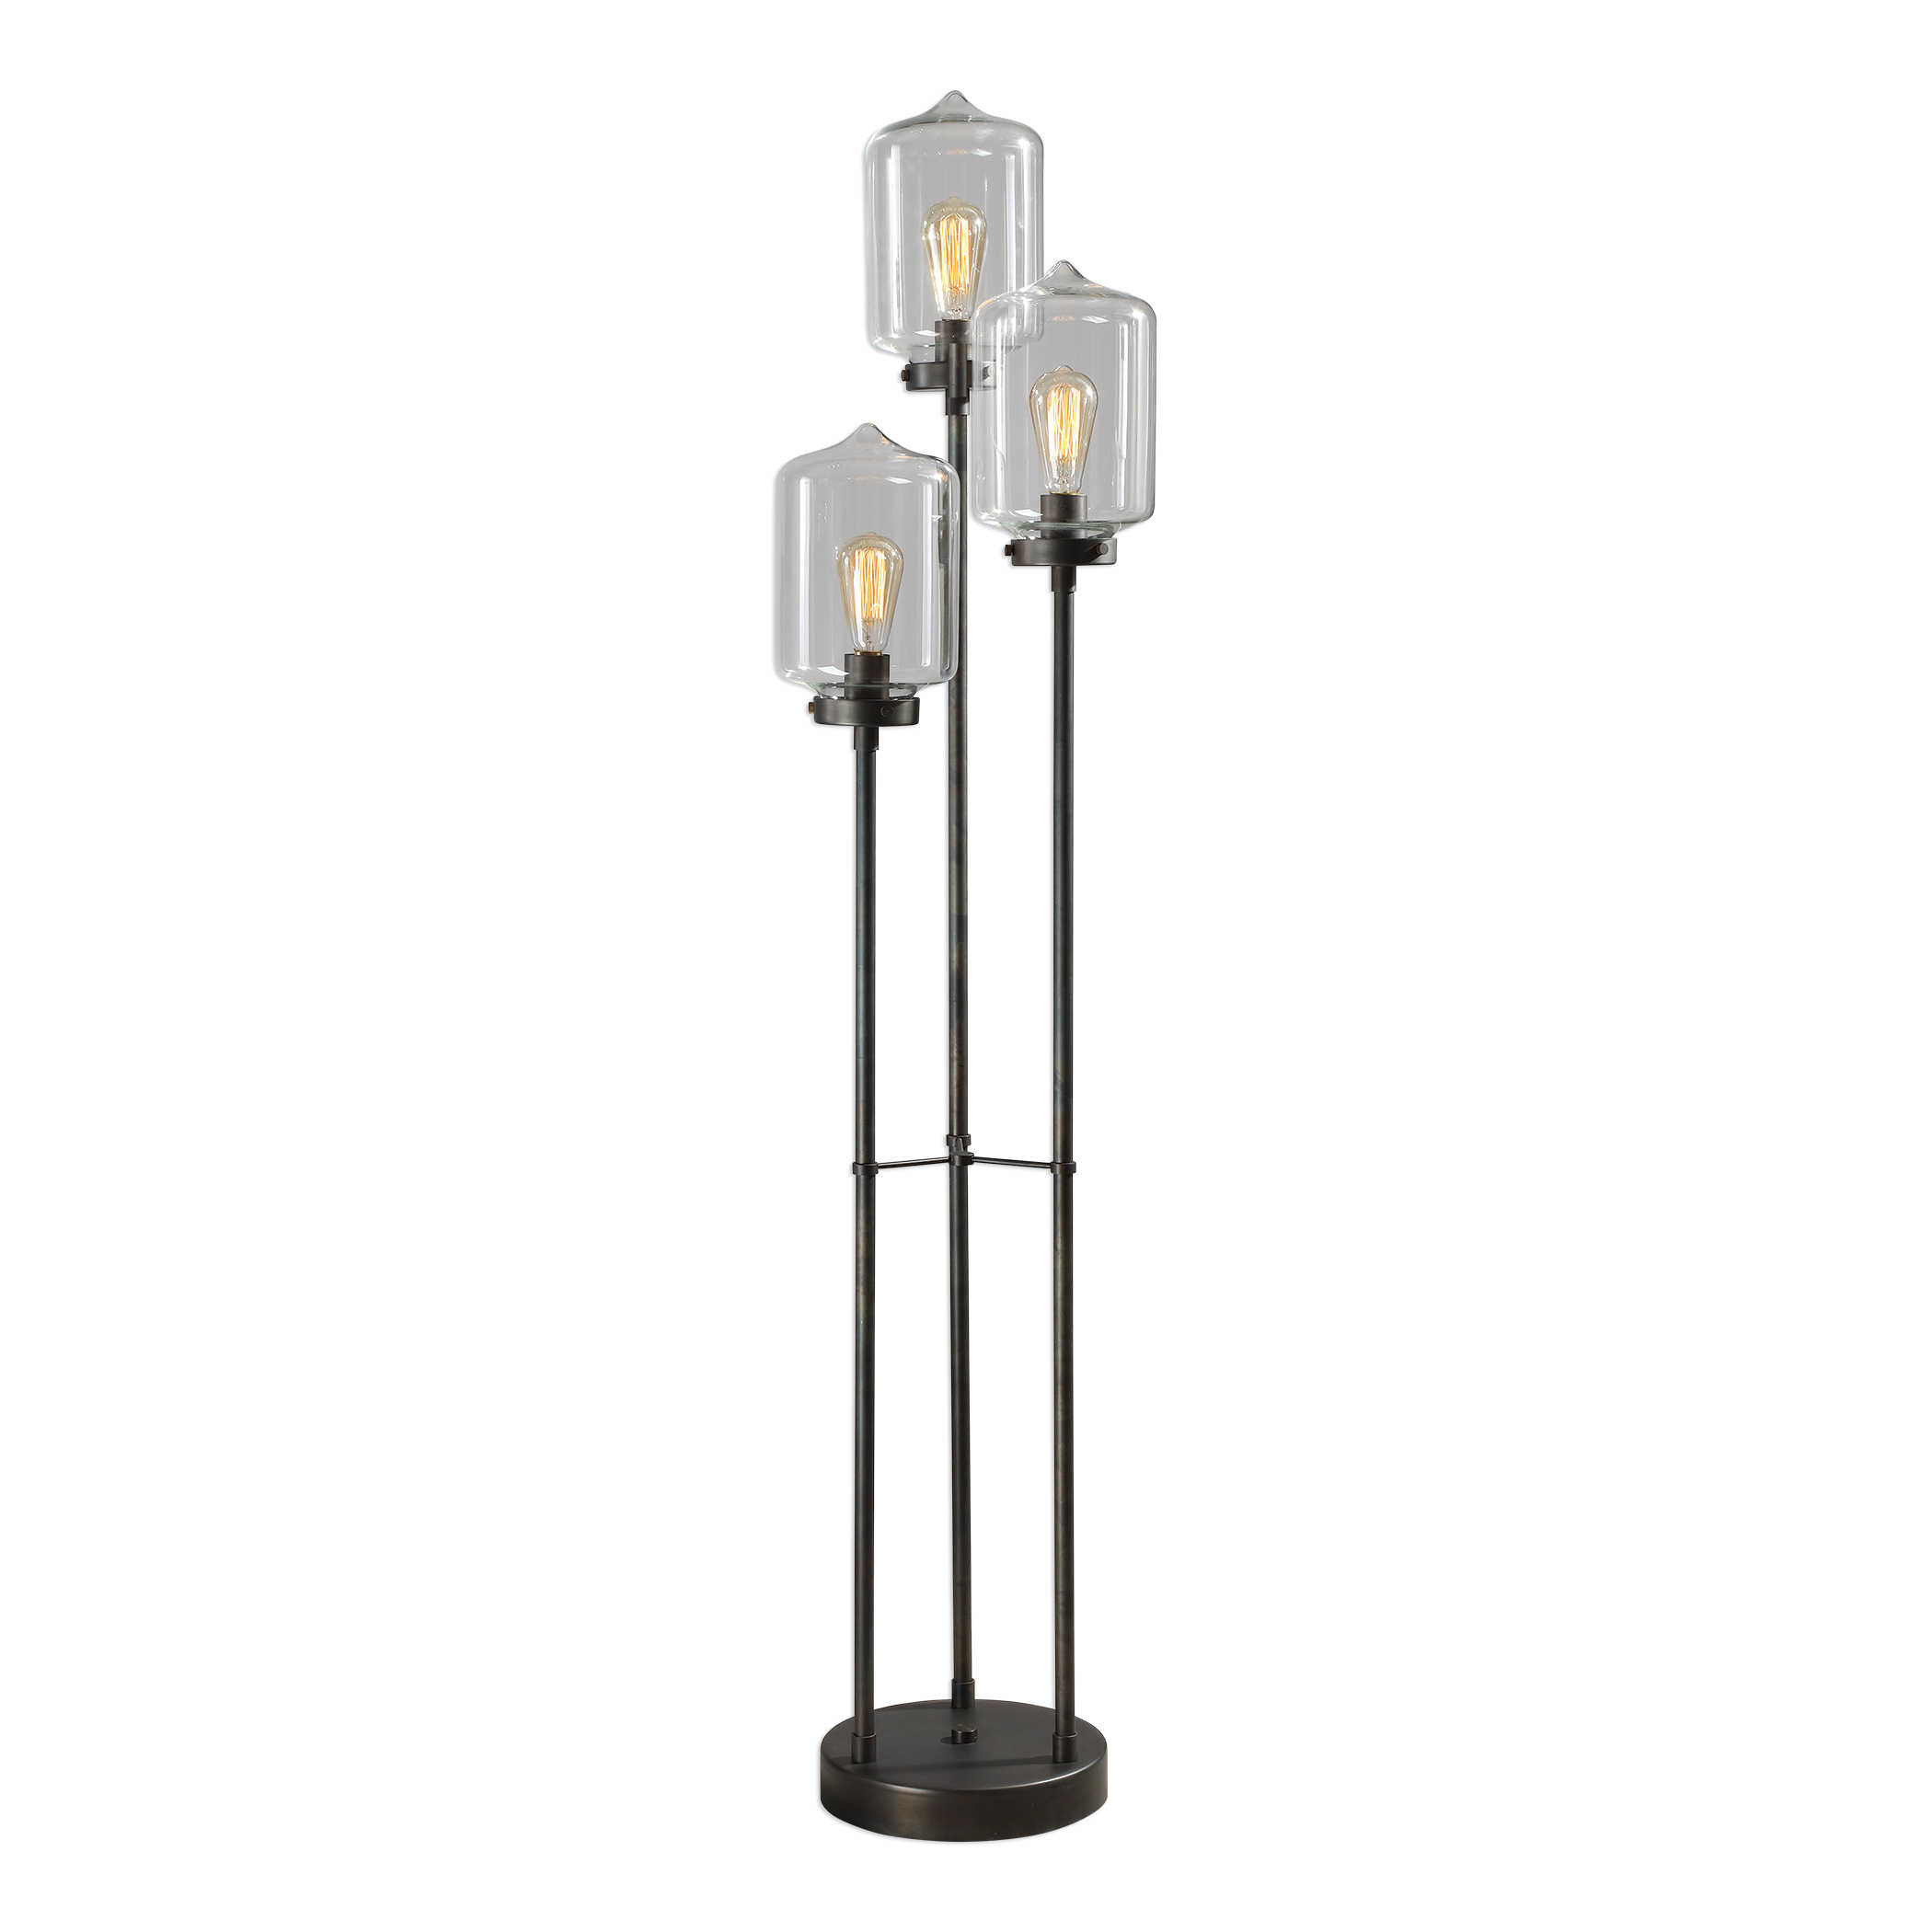 Industrial Floor Lamp-$840.00